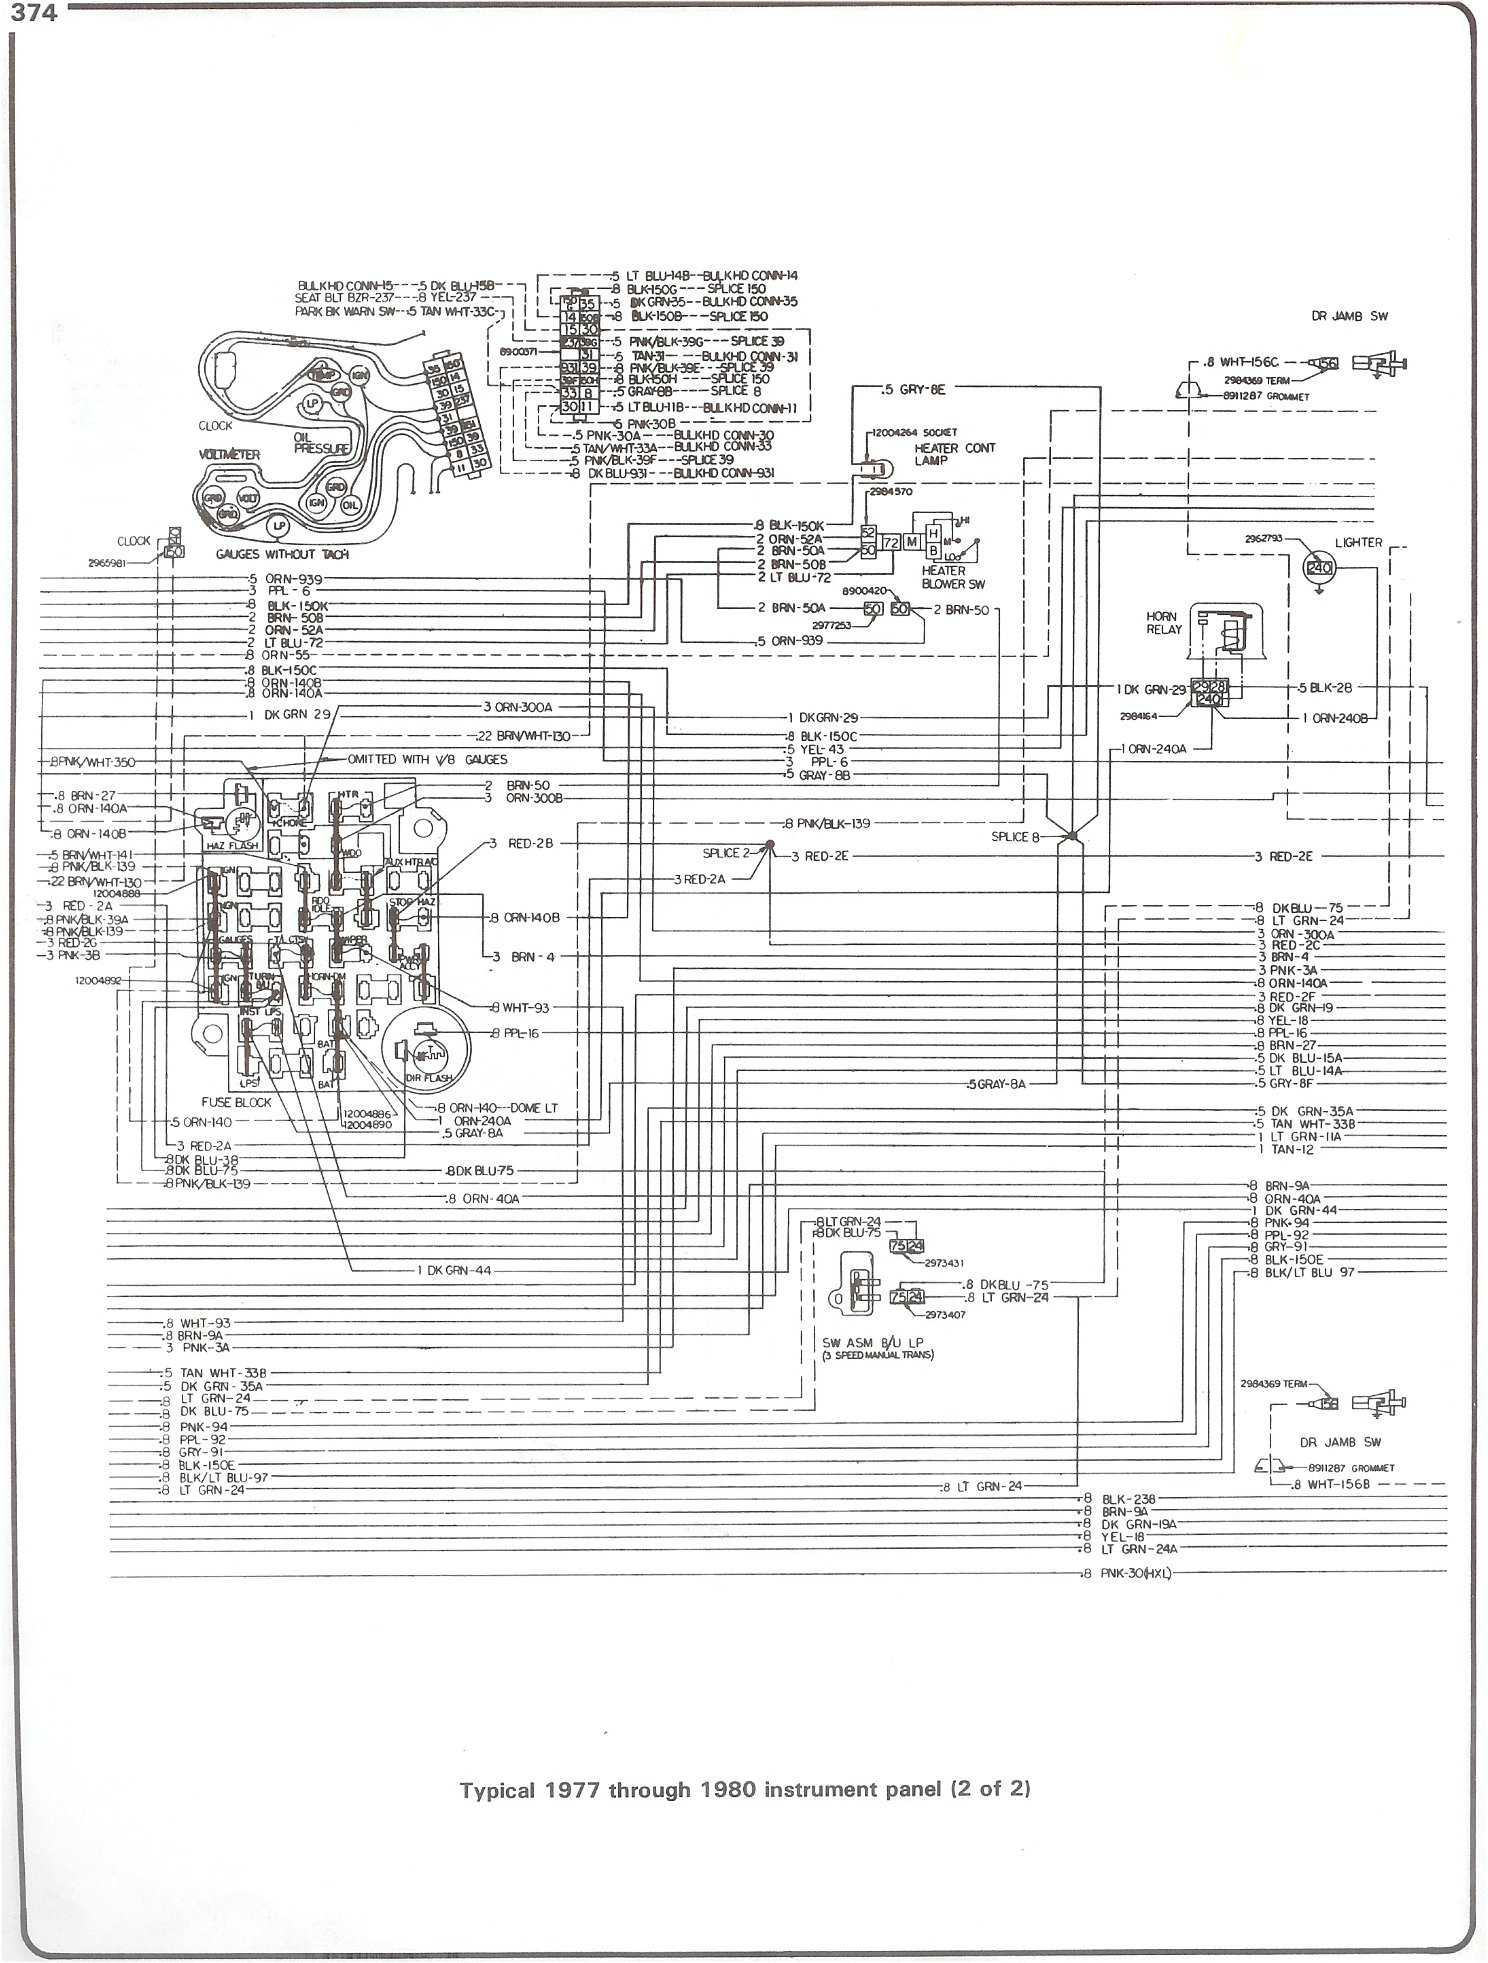 78 chevette wiring diagram best wiring librarycomplete 73 87 wiring diagrams chevette wiring diagram 77 80 intrument panel page 2